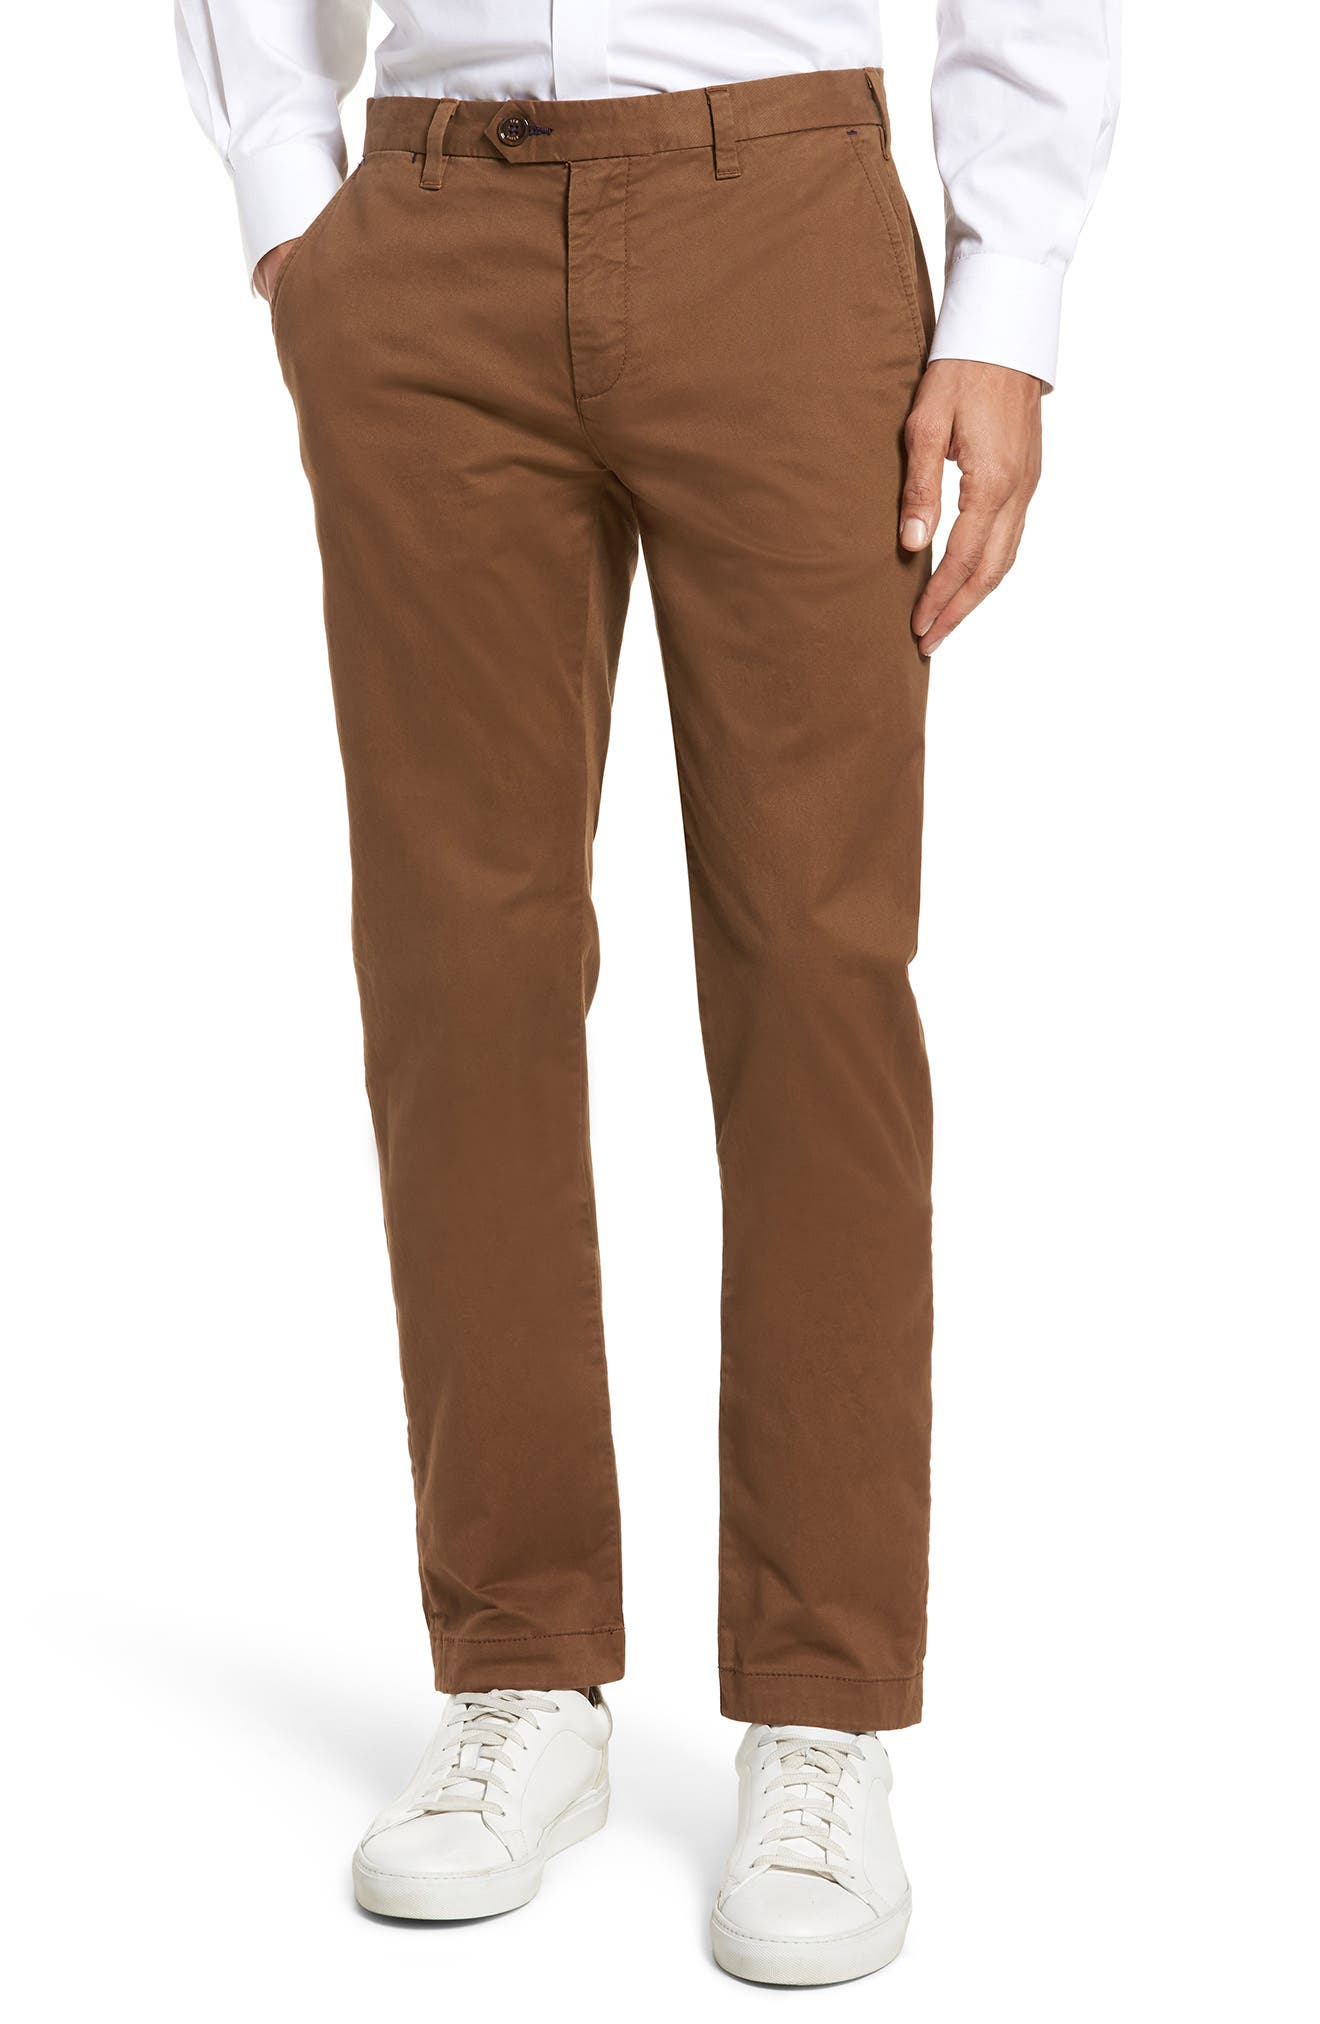 Proctt Flat Front Stretch Solid Cotton Pants,                             Main thumbnail 1, color,                             TAN